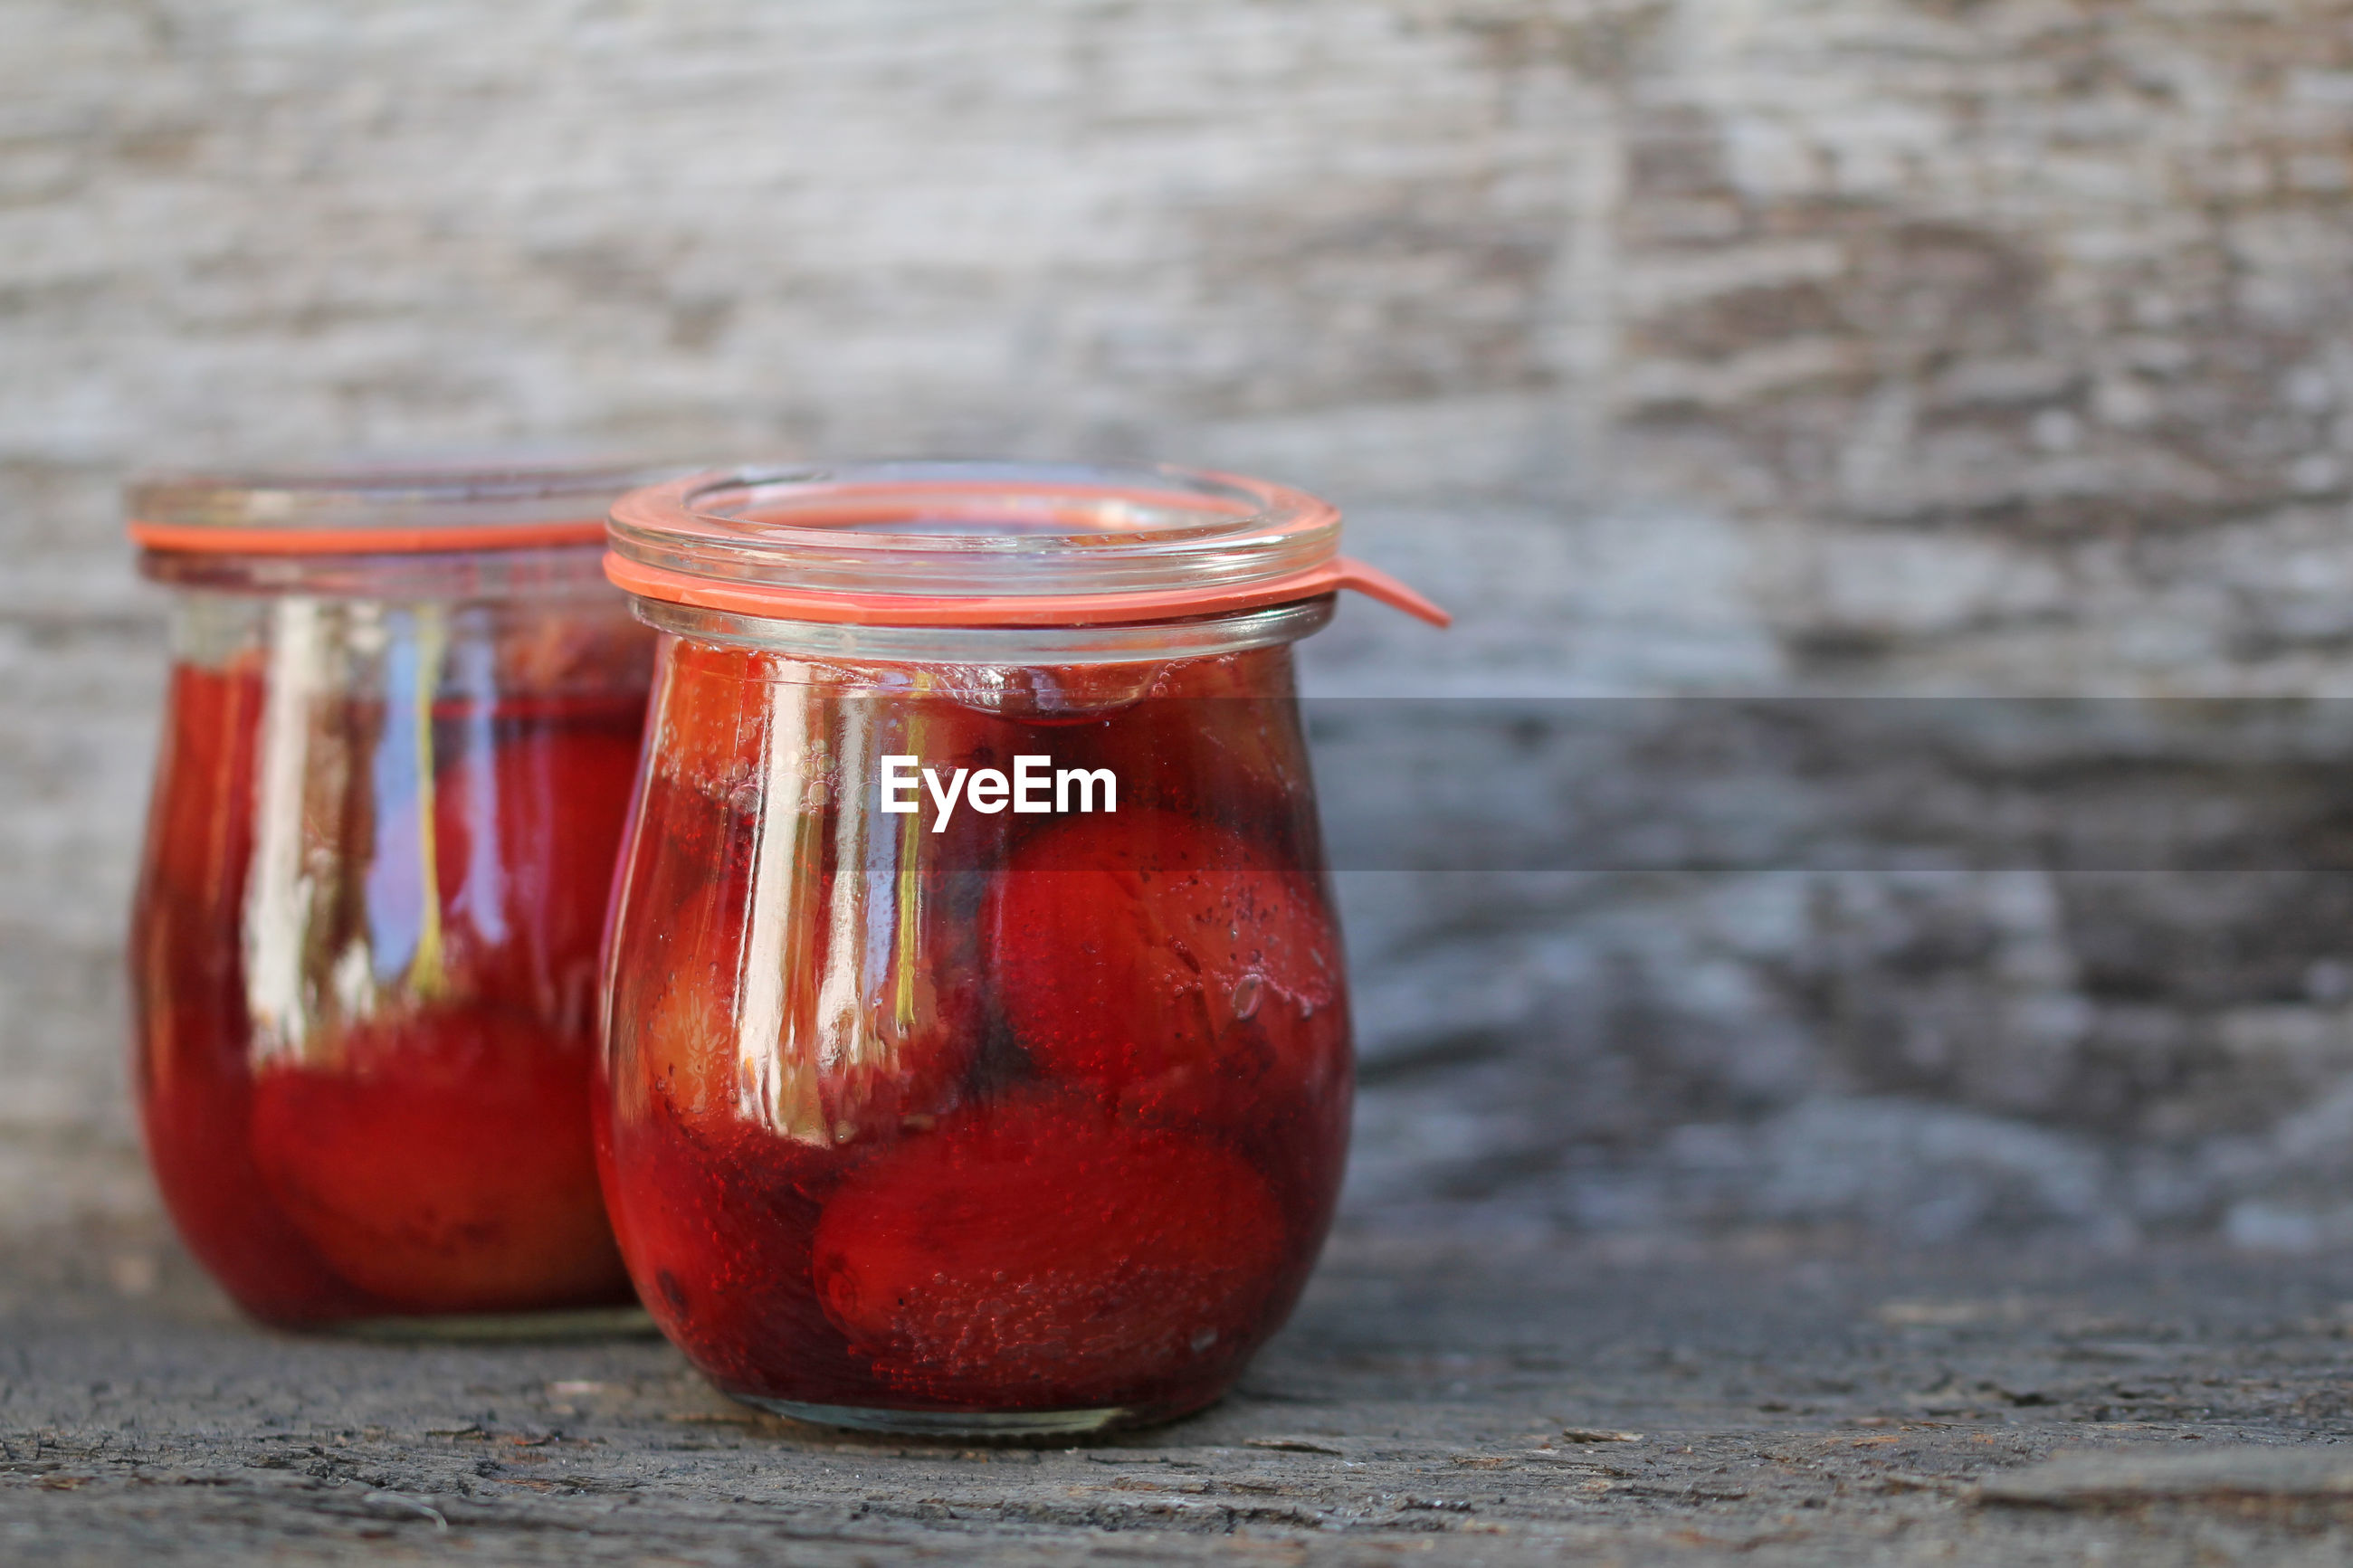 CLOSE-UP OF JUICE IN GLASS JAR ON TABLE